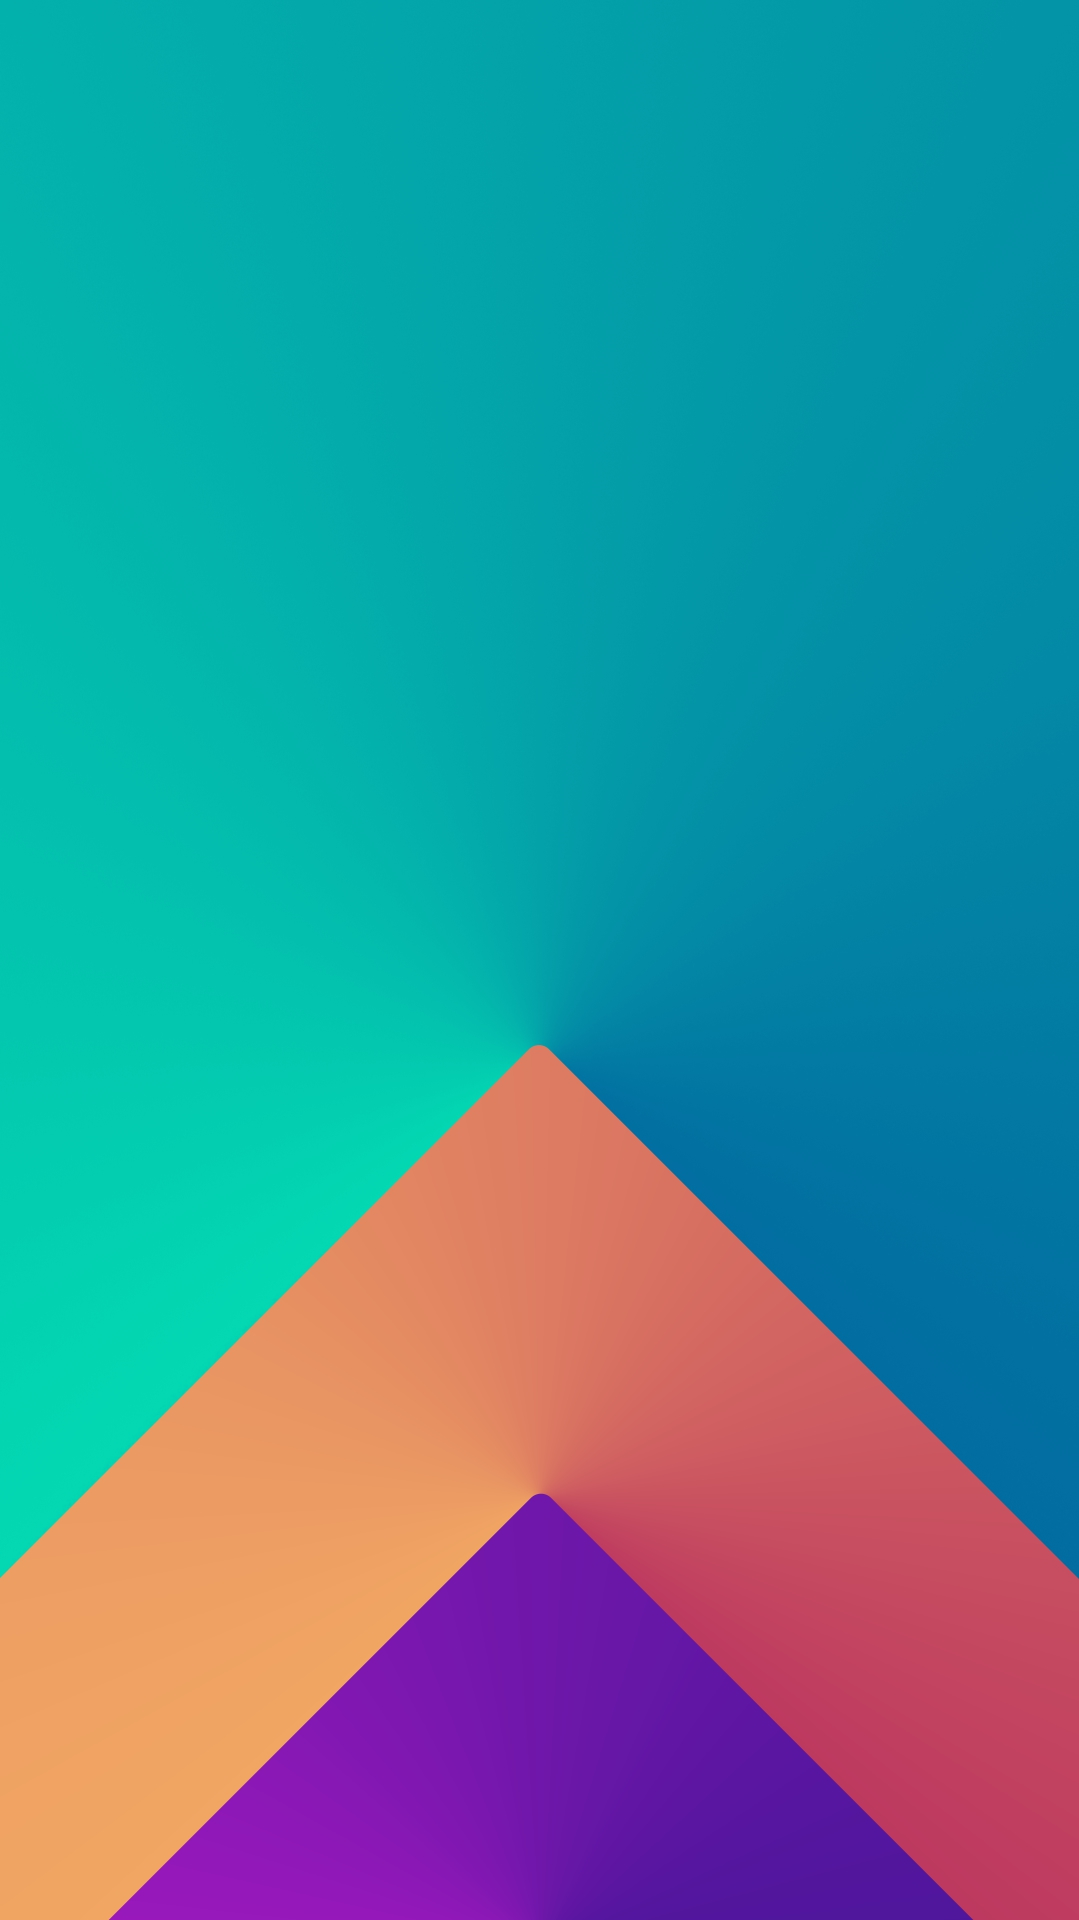 Triangle Colours 3D iPhone Wallpaper iphoneswallpapers com